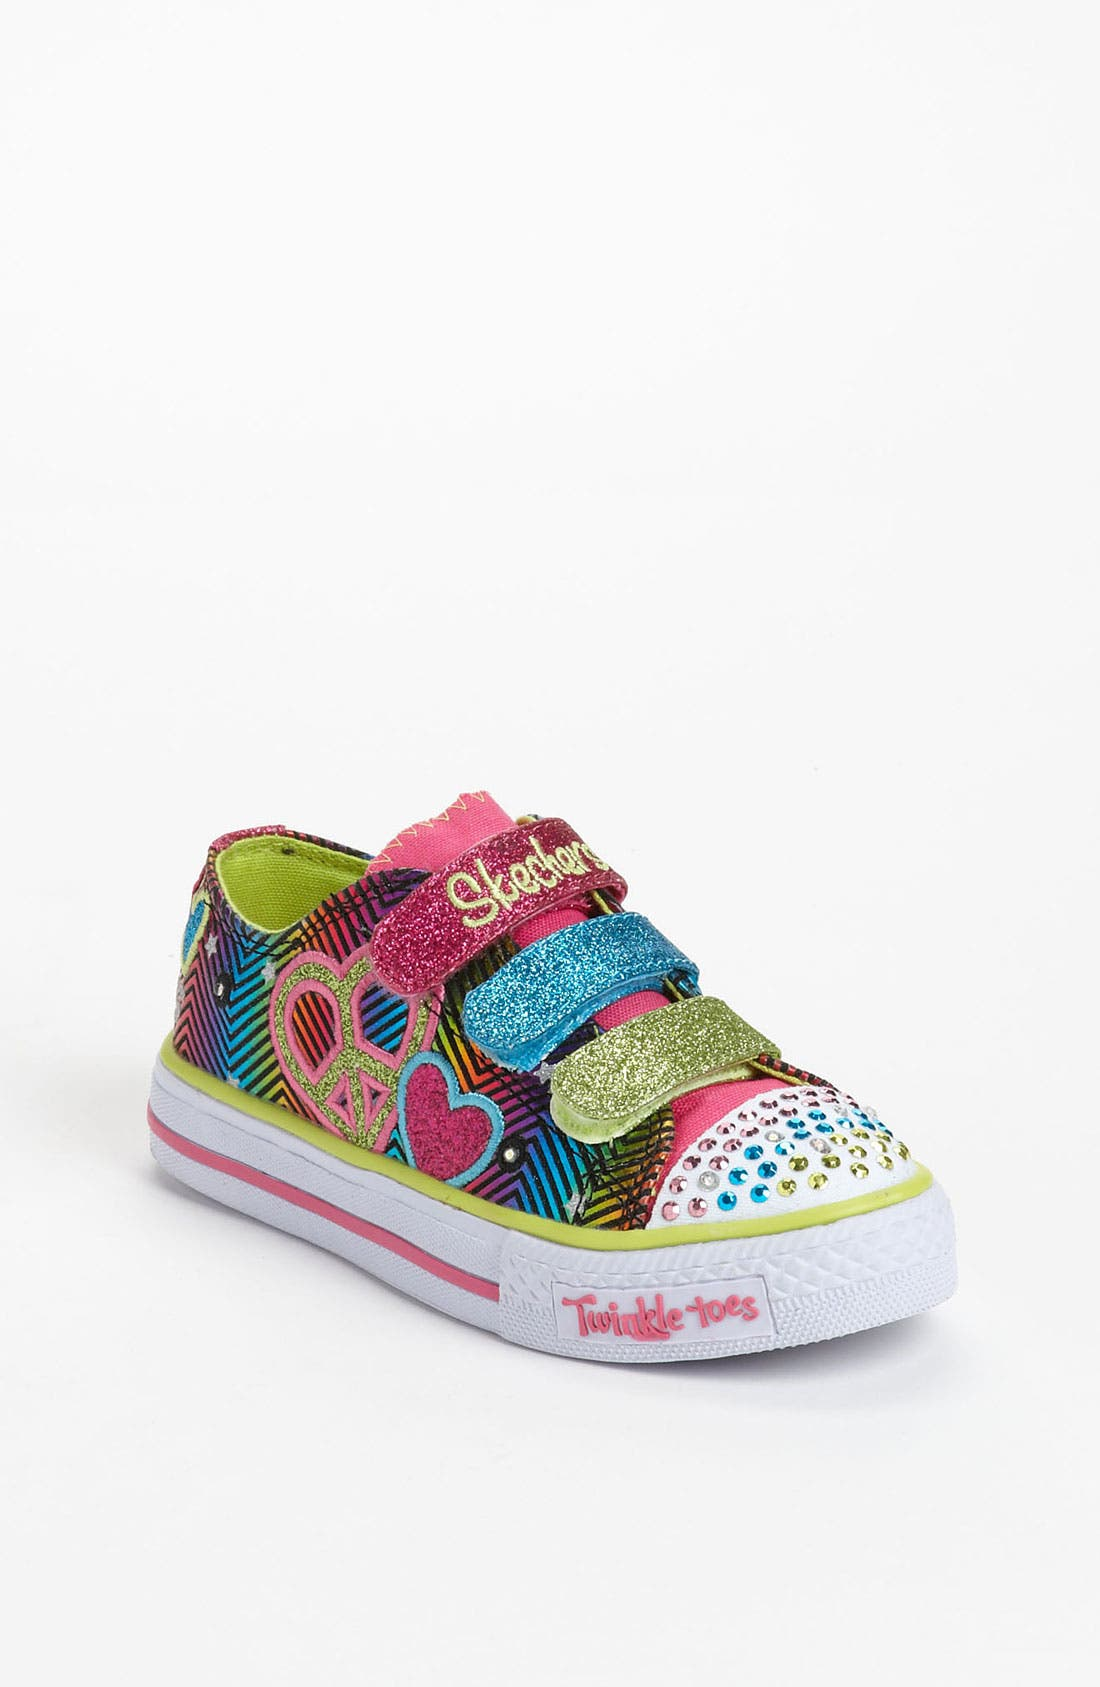 Alternate Image 1 Selected - SKECHERS 'Shuffles - Baby Luv' Sneaker (Toddler & Little Kid)